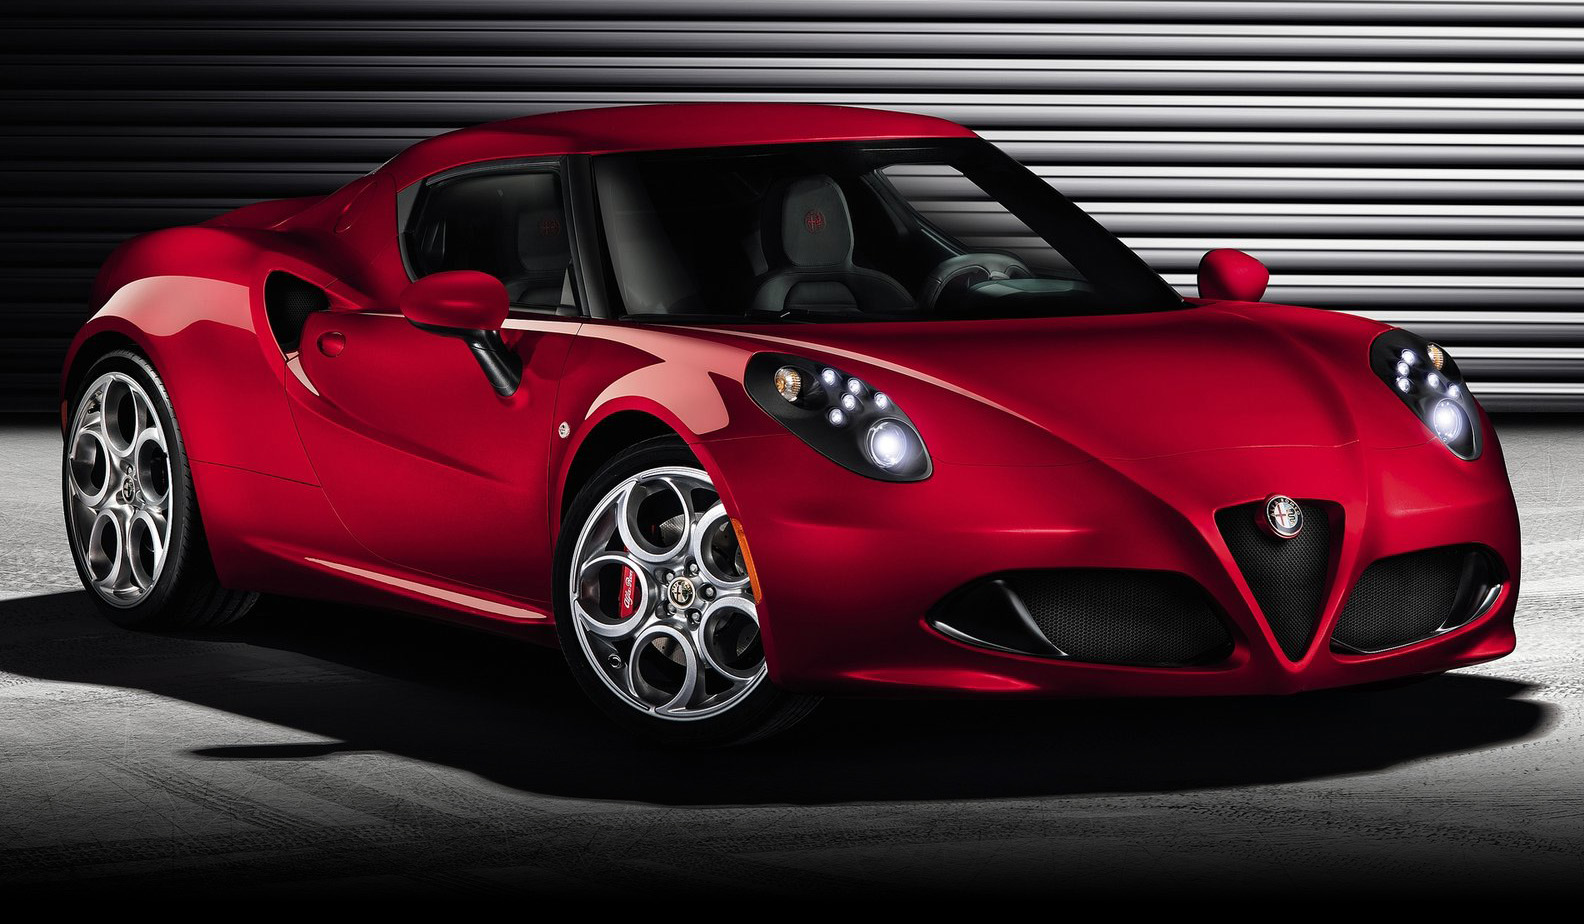 2015 Alfa Romeo 4C photo - 1